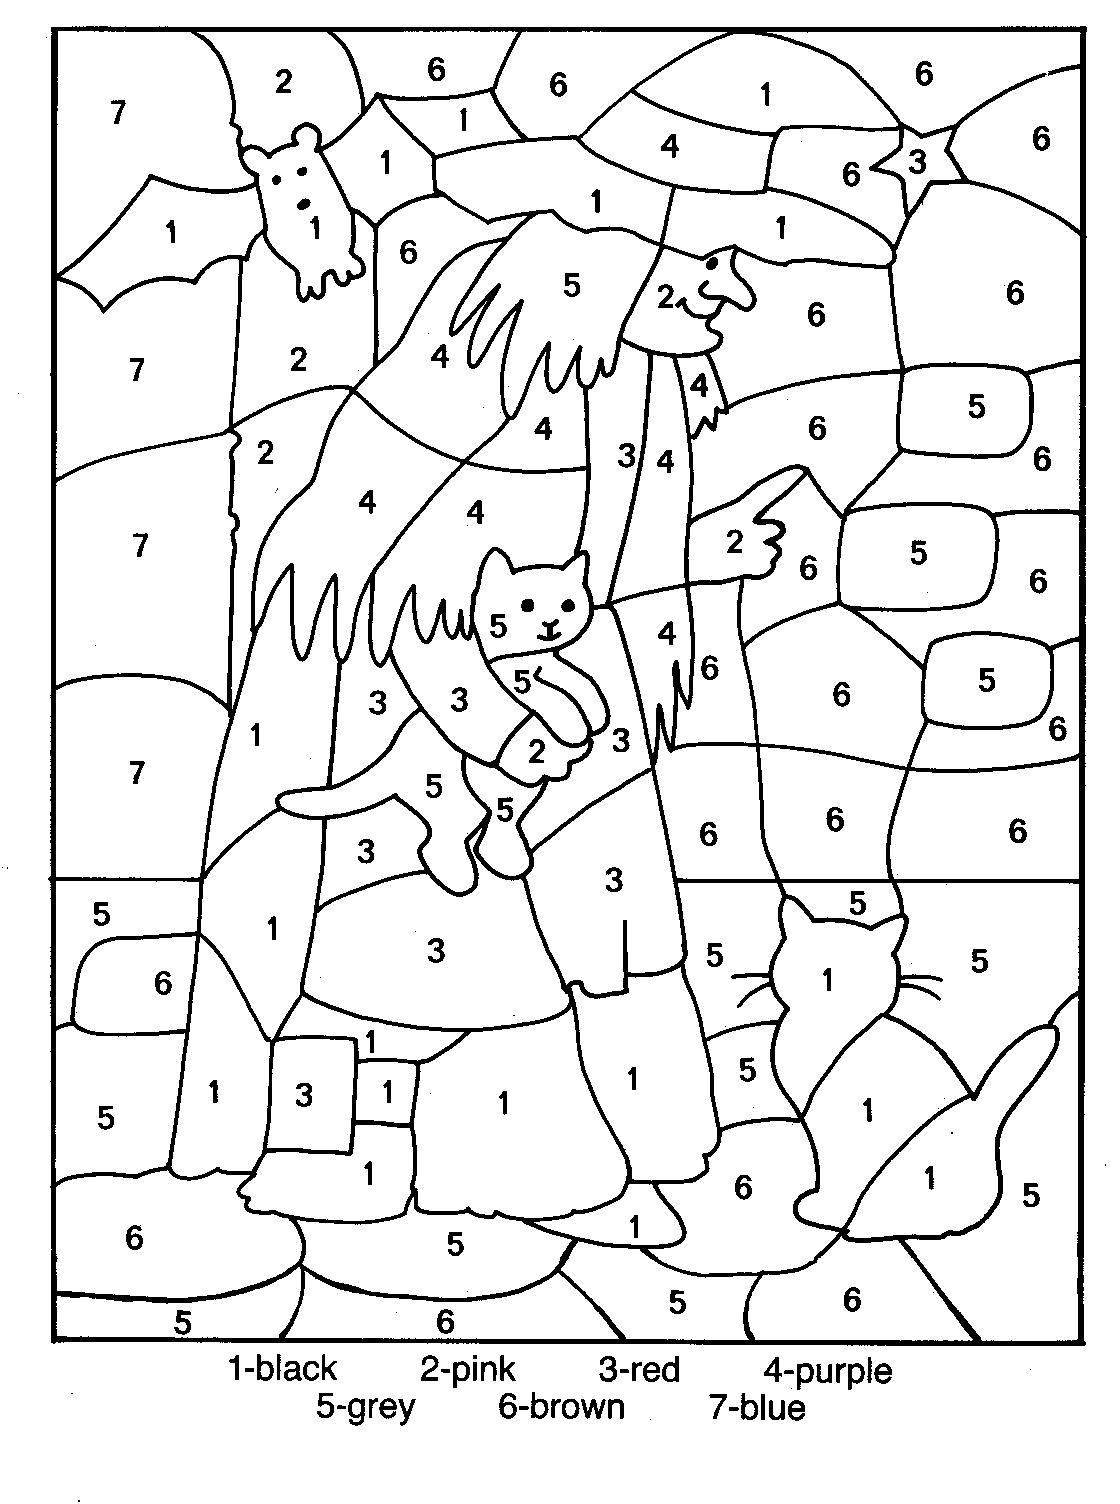 coloring sheets color by number color by number little fairy coloring page for kids color sheets number by coloring